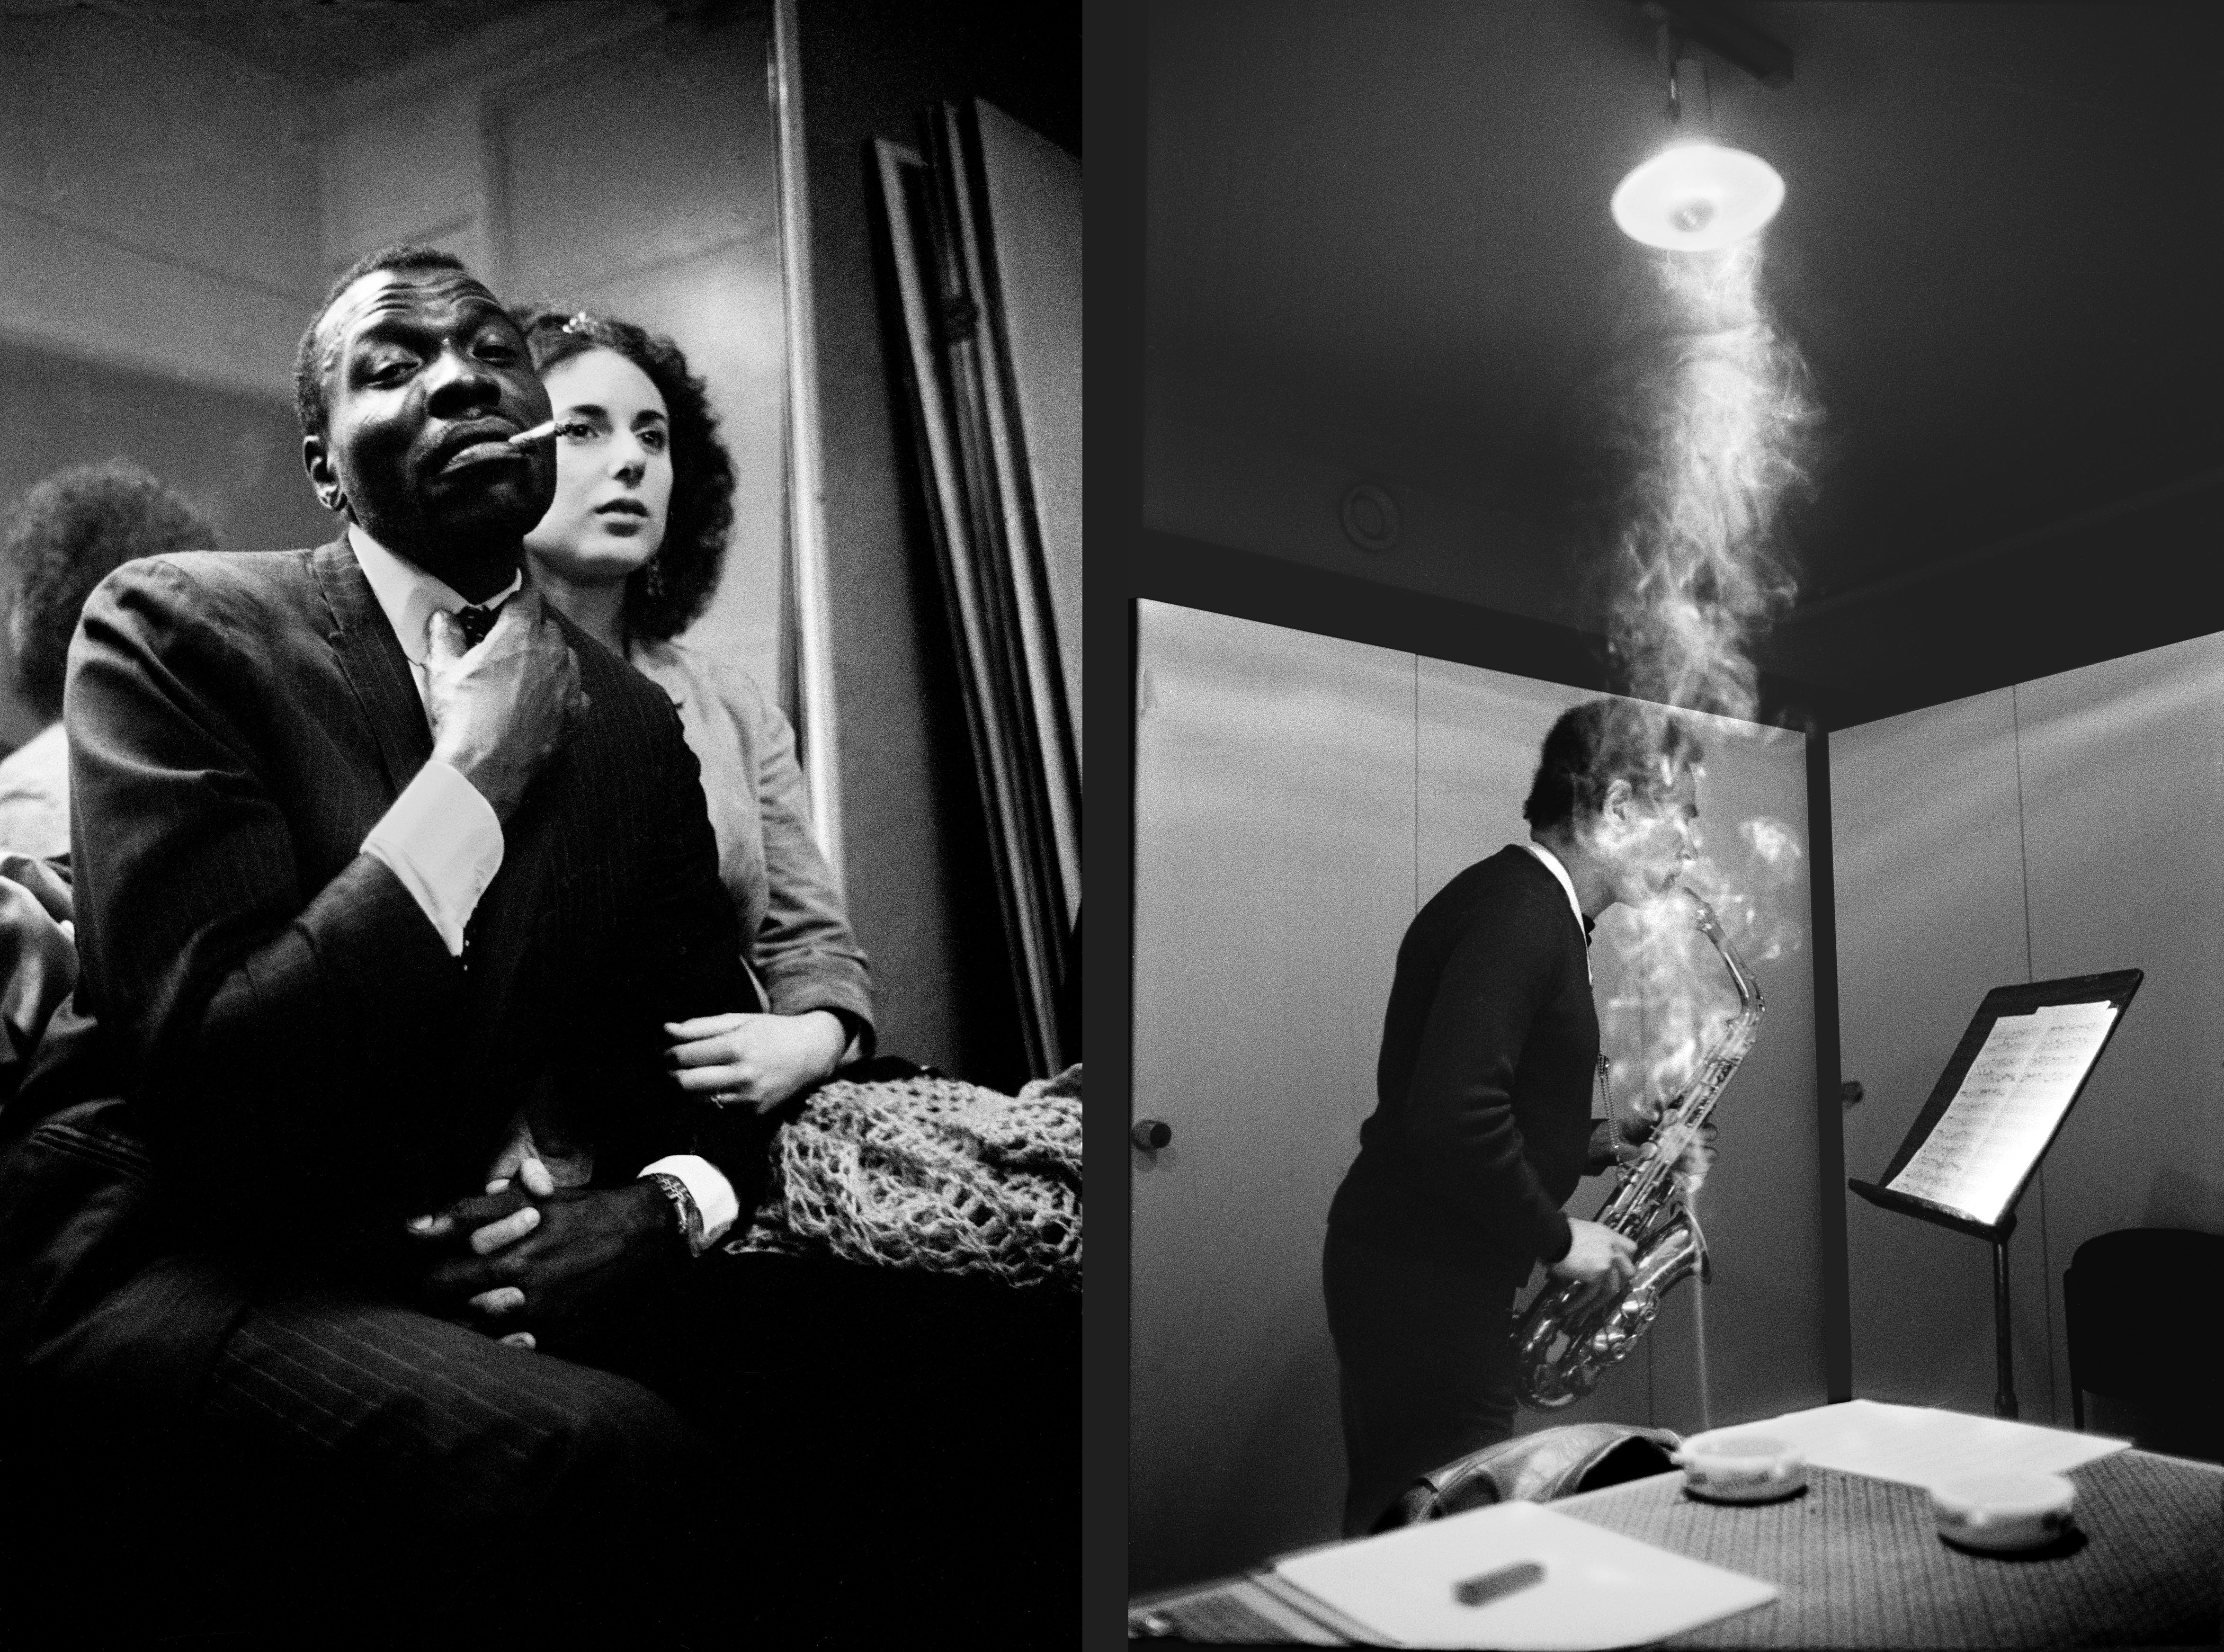 The American drummer Elvin Jones with dancer Roberta Escamilla Garrison,1968 (left) and saxophonist Jimmy Lyons in his dressing room, 1981.